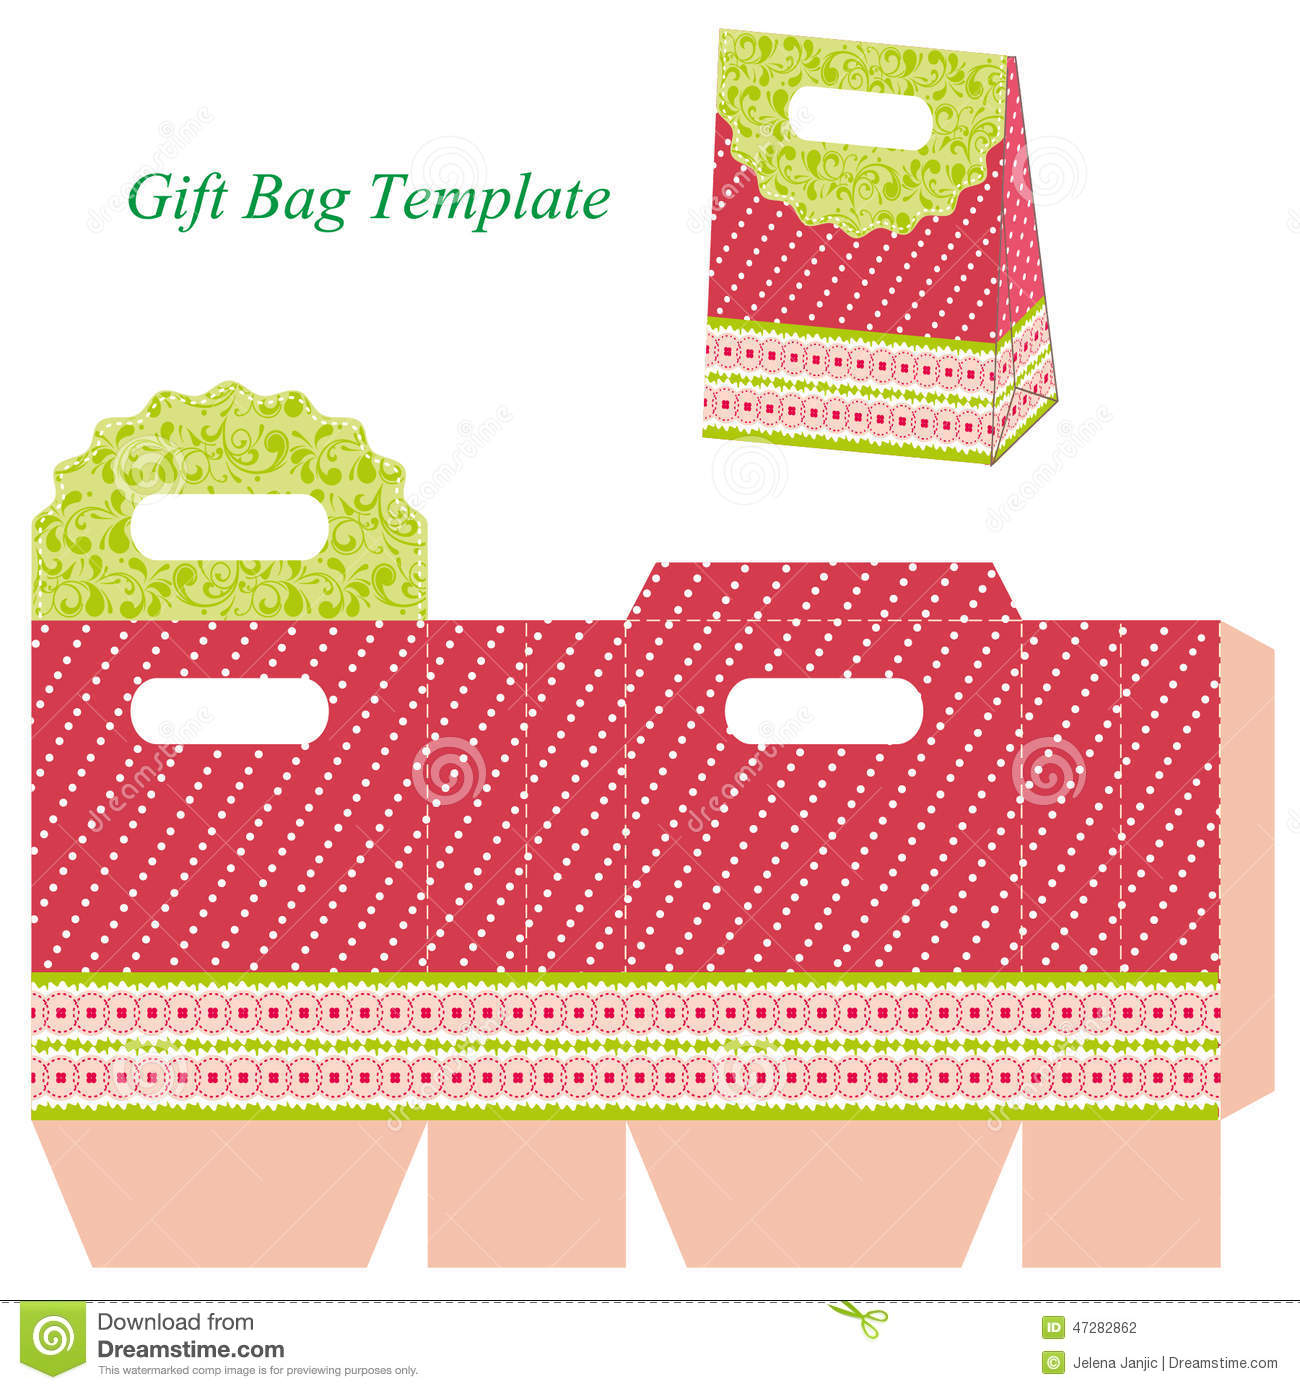 Red Gift Bag Template With Dots And Ribbon Stock Vector - Image ...